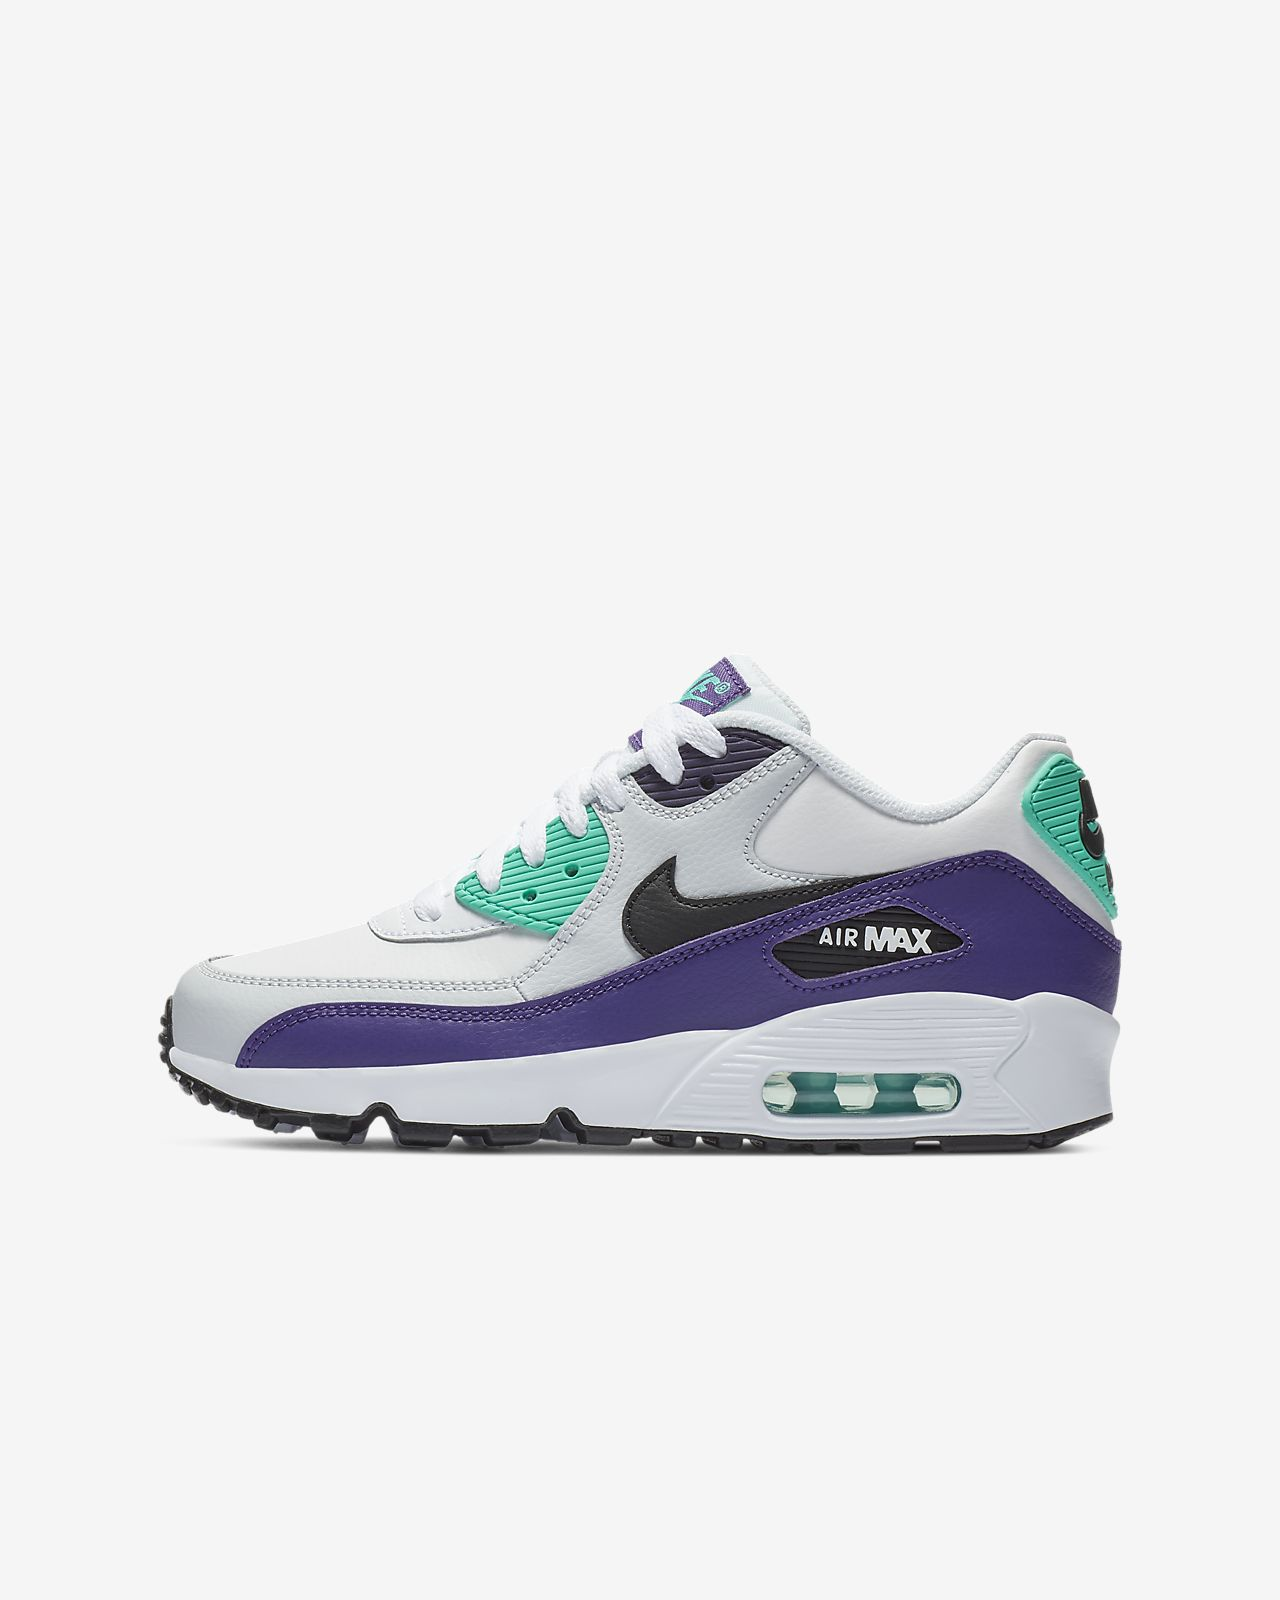 reputable site 88542 ba7c8 ... Nike Air Max 90 Leather Older Kids  Shoe